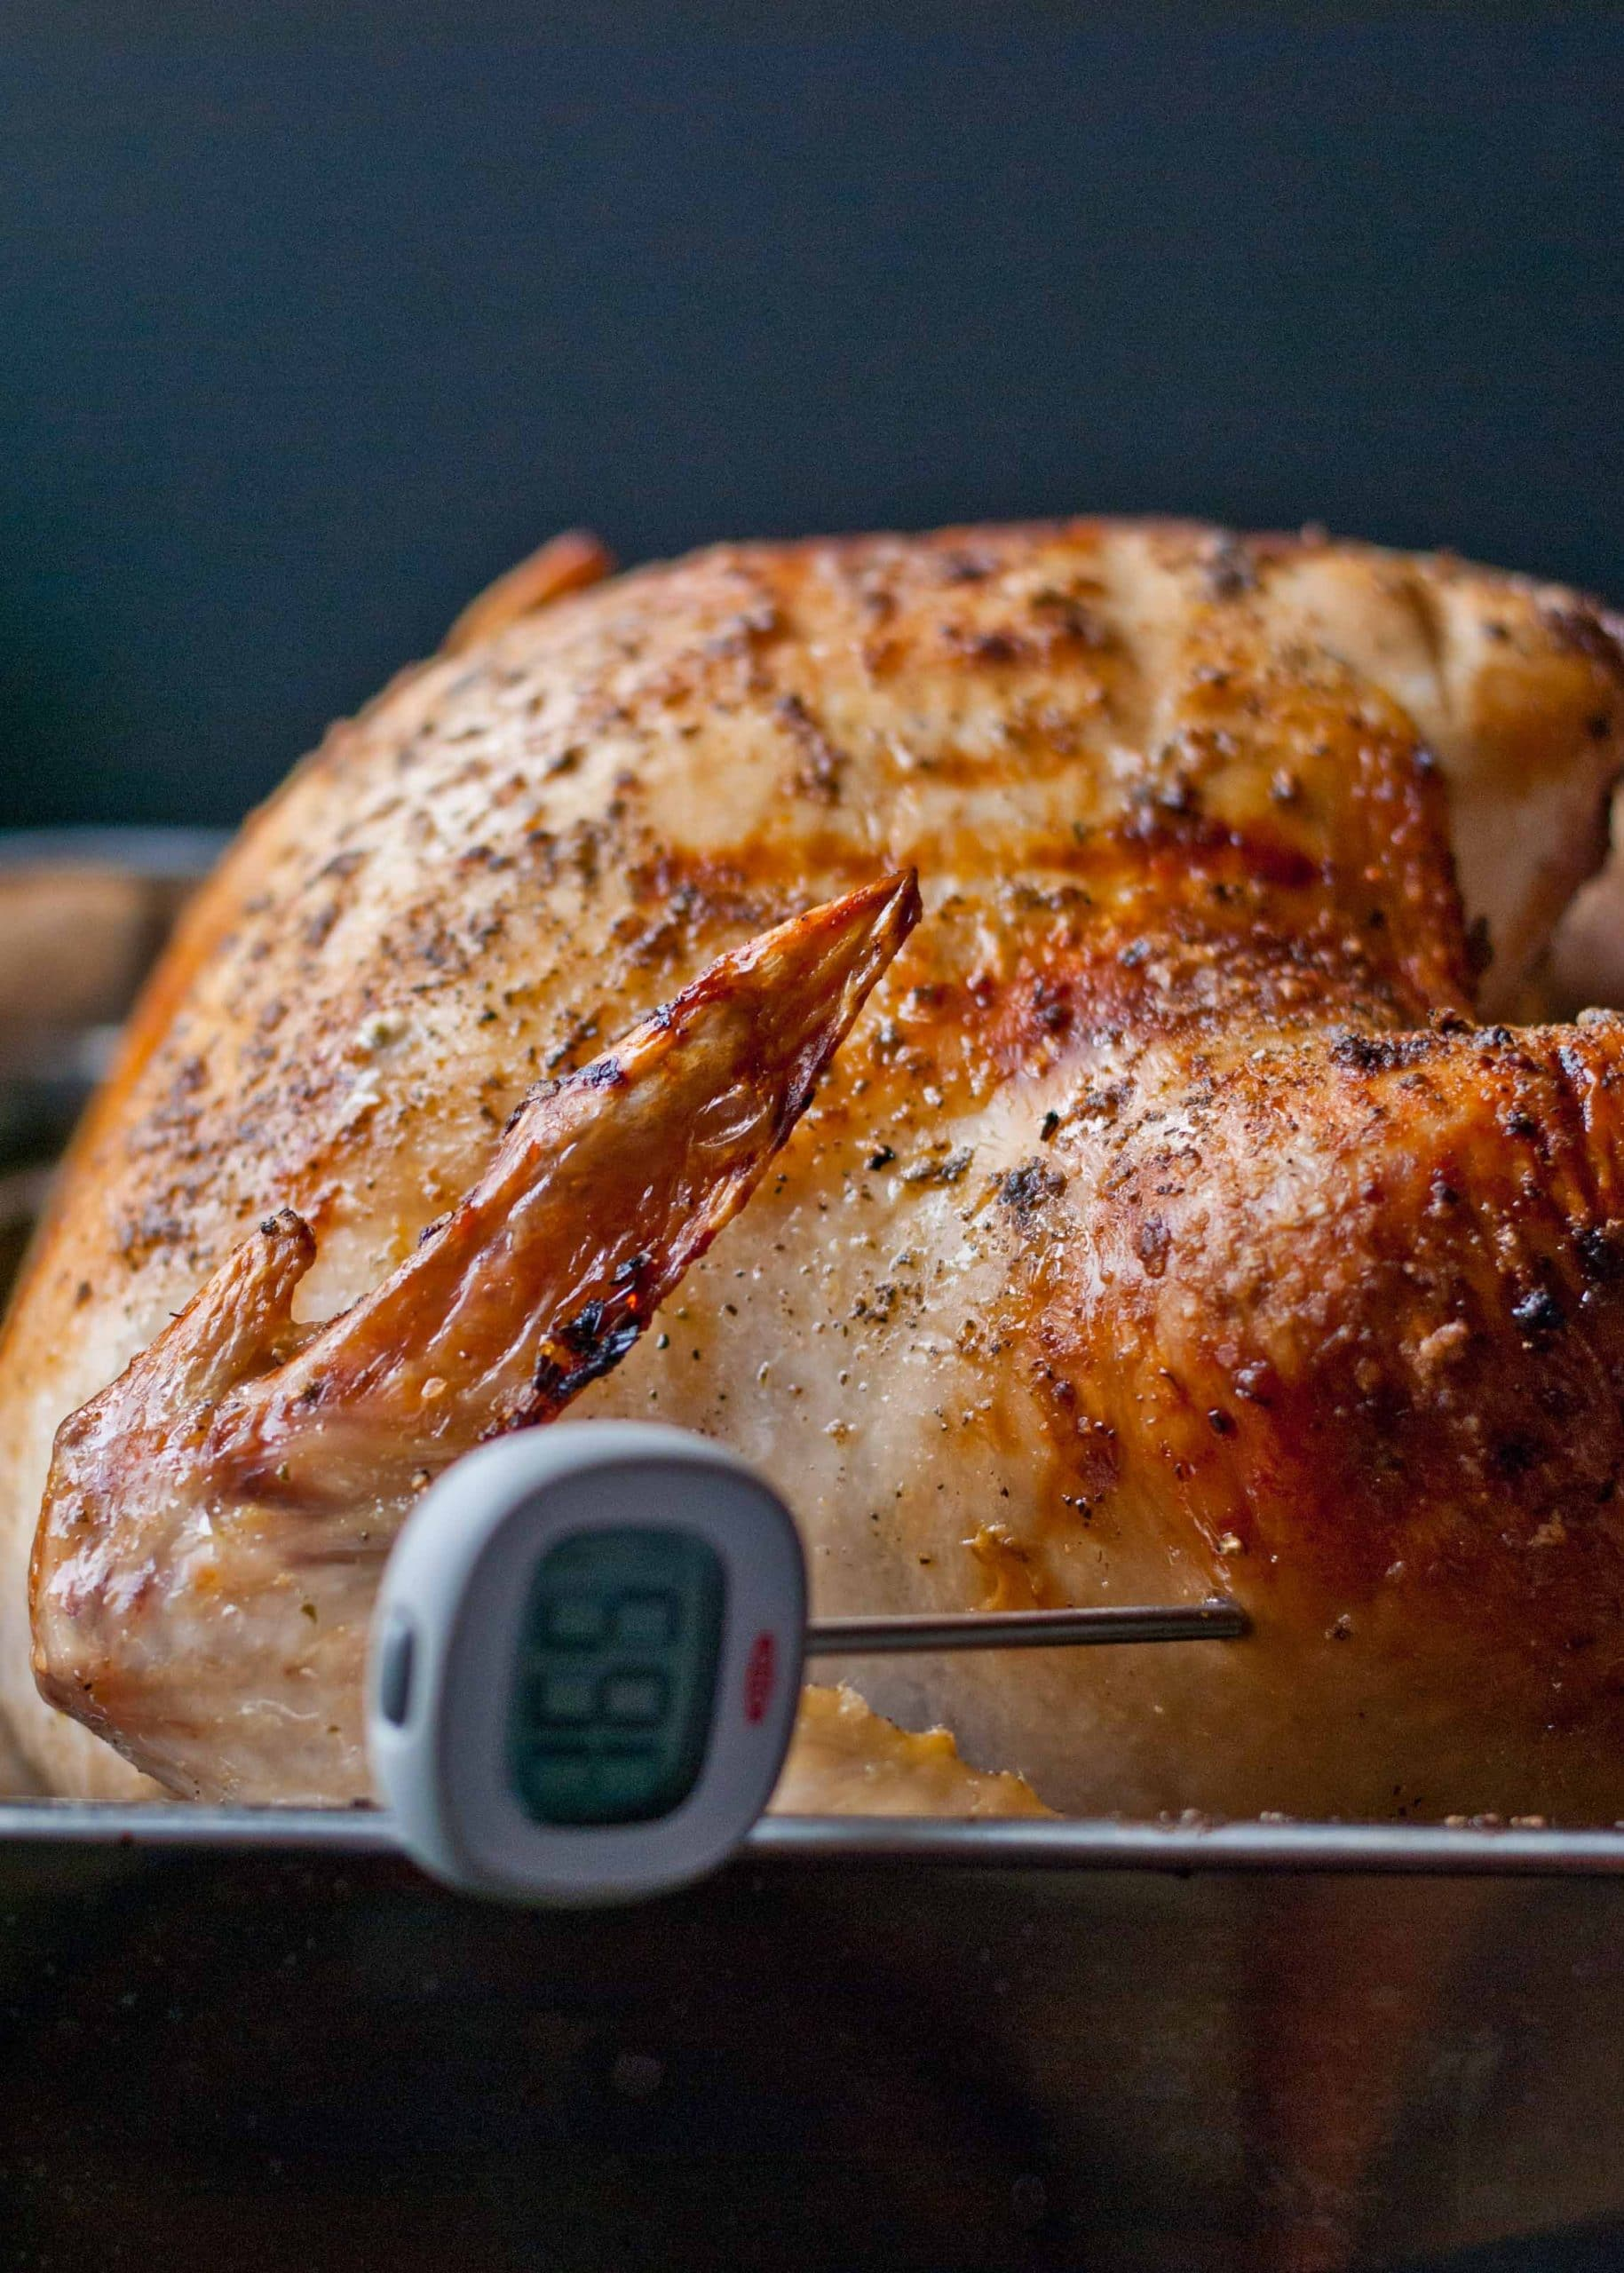 a cooked oven roasted turkey with golden brown skin reads 165 degrees F on a meat thermometer